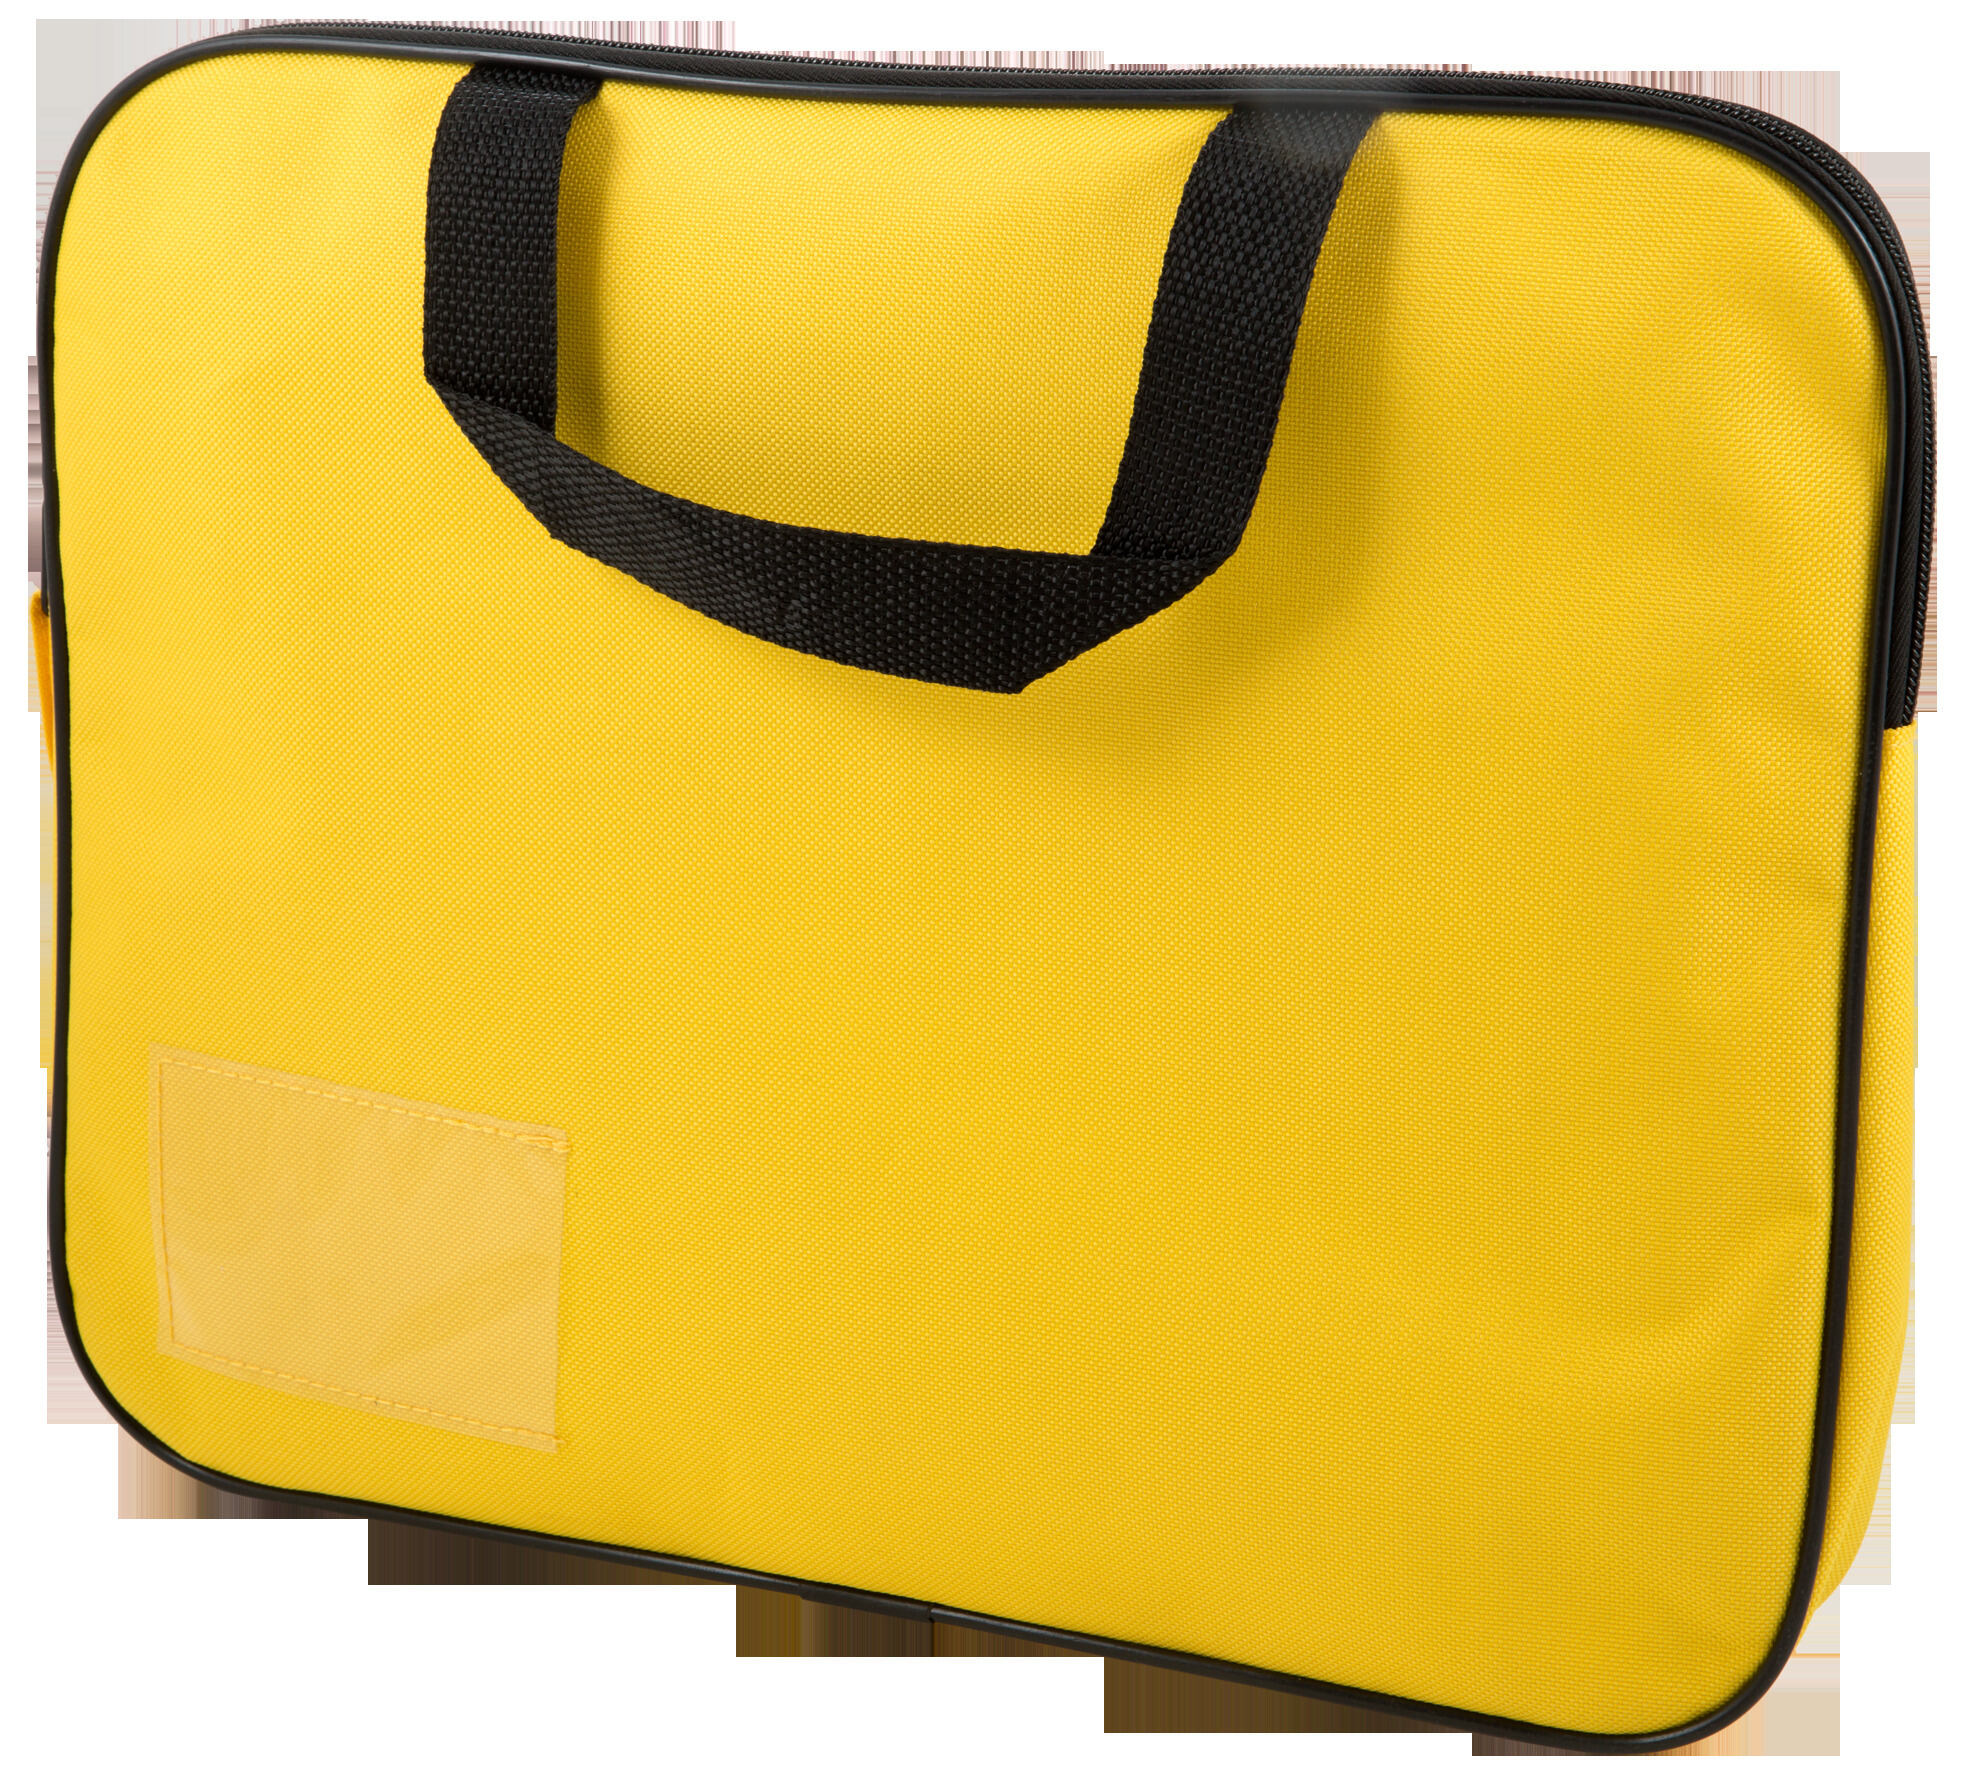 Homework Bag (Book Bag) With Handle - Yellow